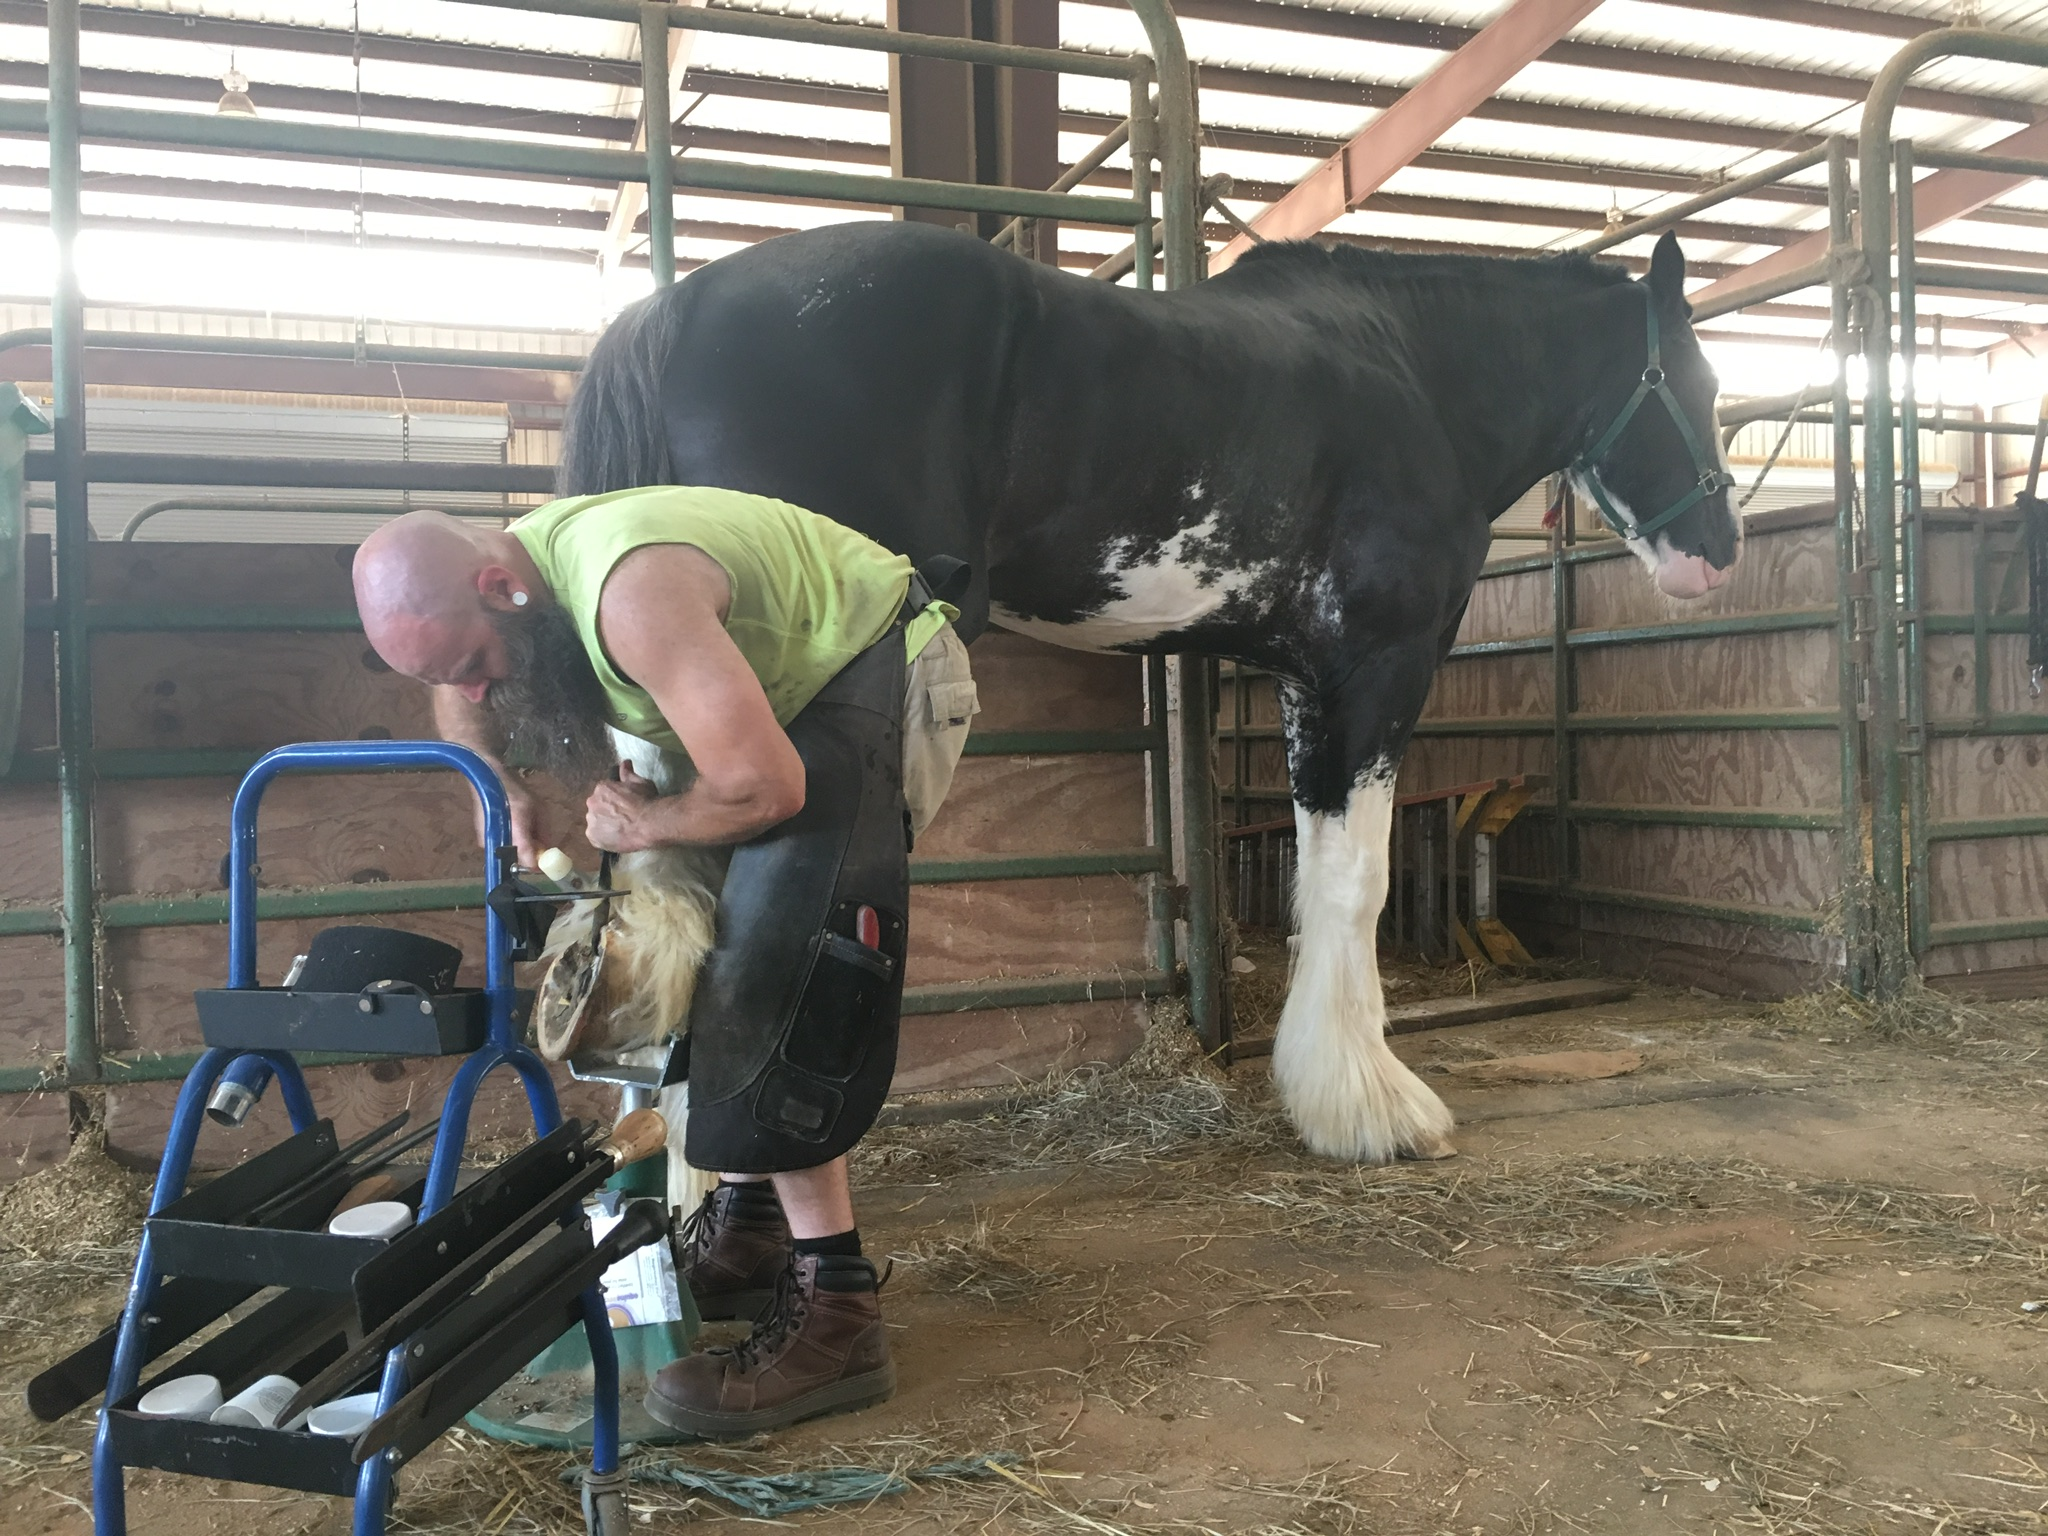 Trimming a Clydesdale stud